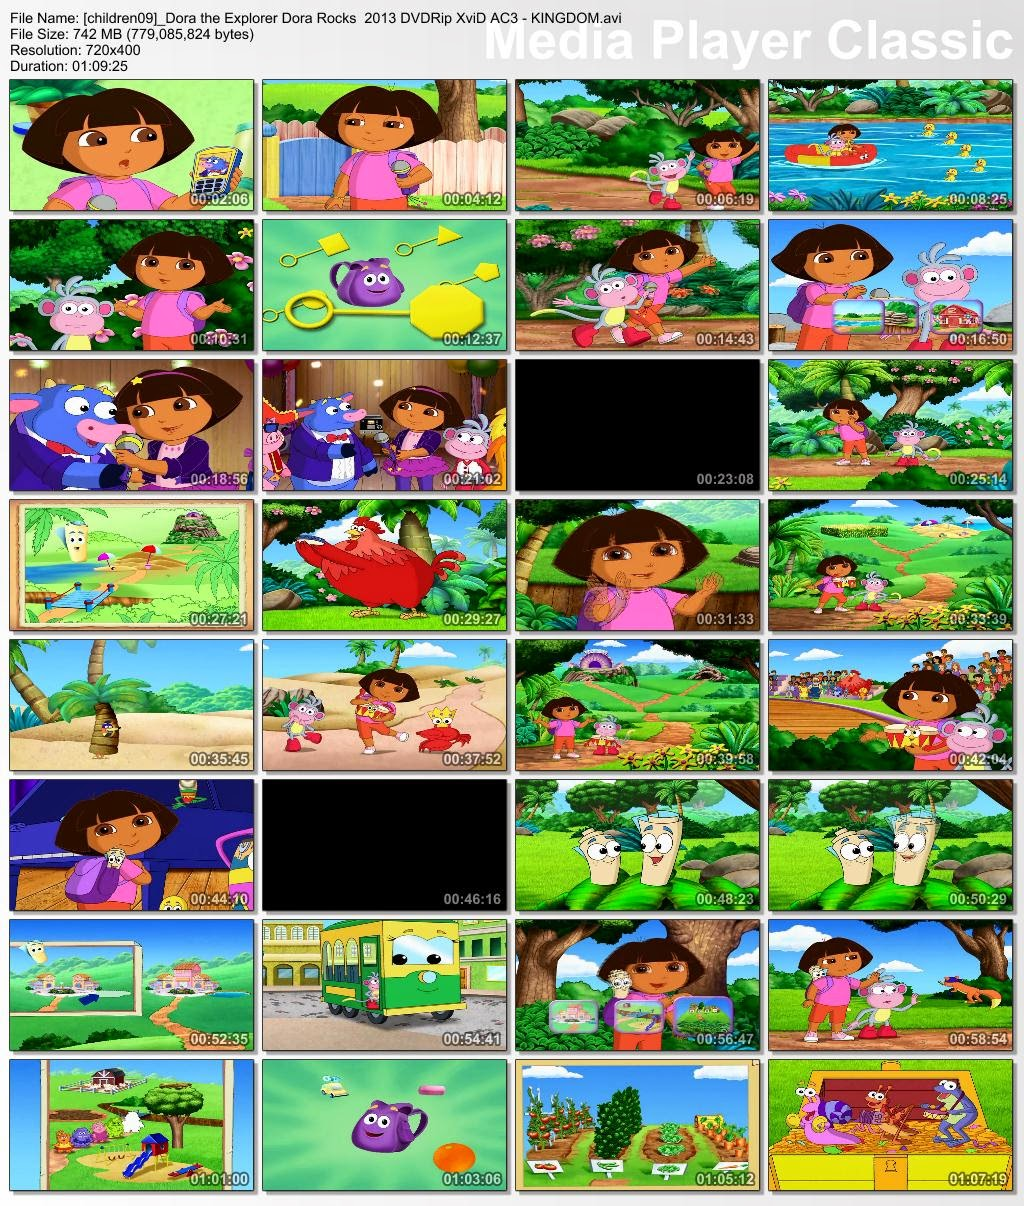 Dora The Explorer Dvdrip Pictures To Pin On Pinterest